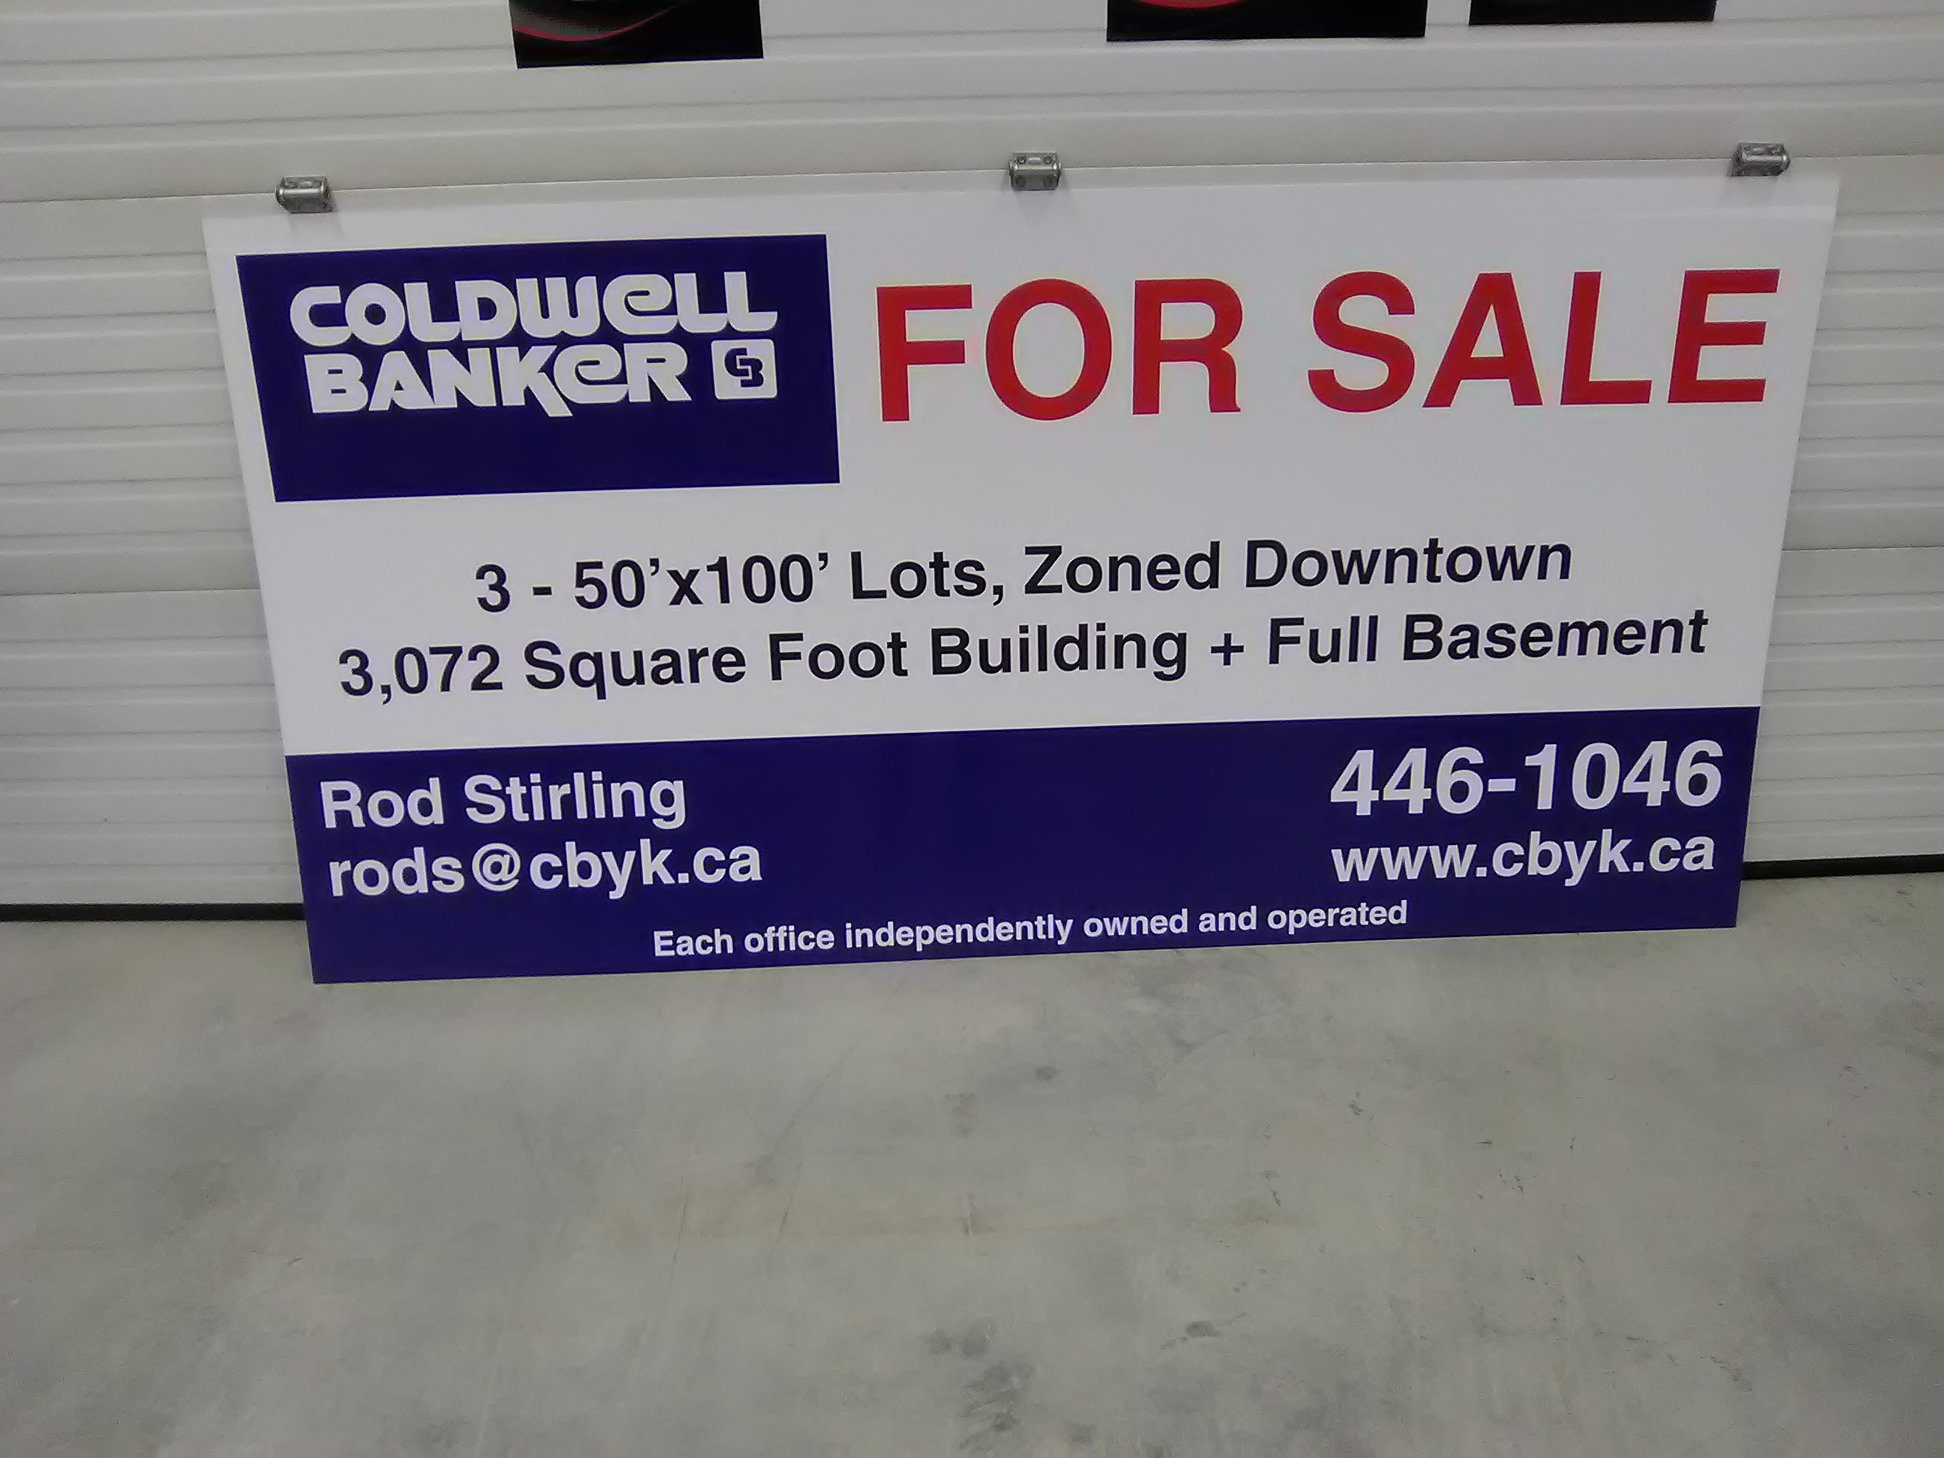 Commercial Real Estate For Sale Sign.